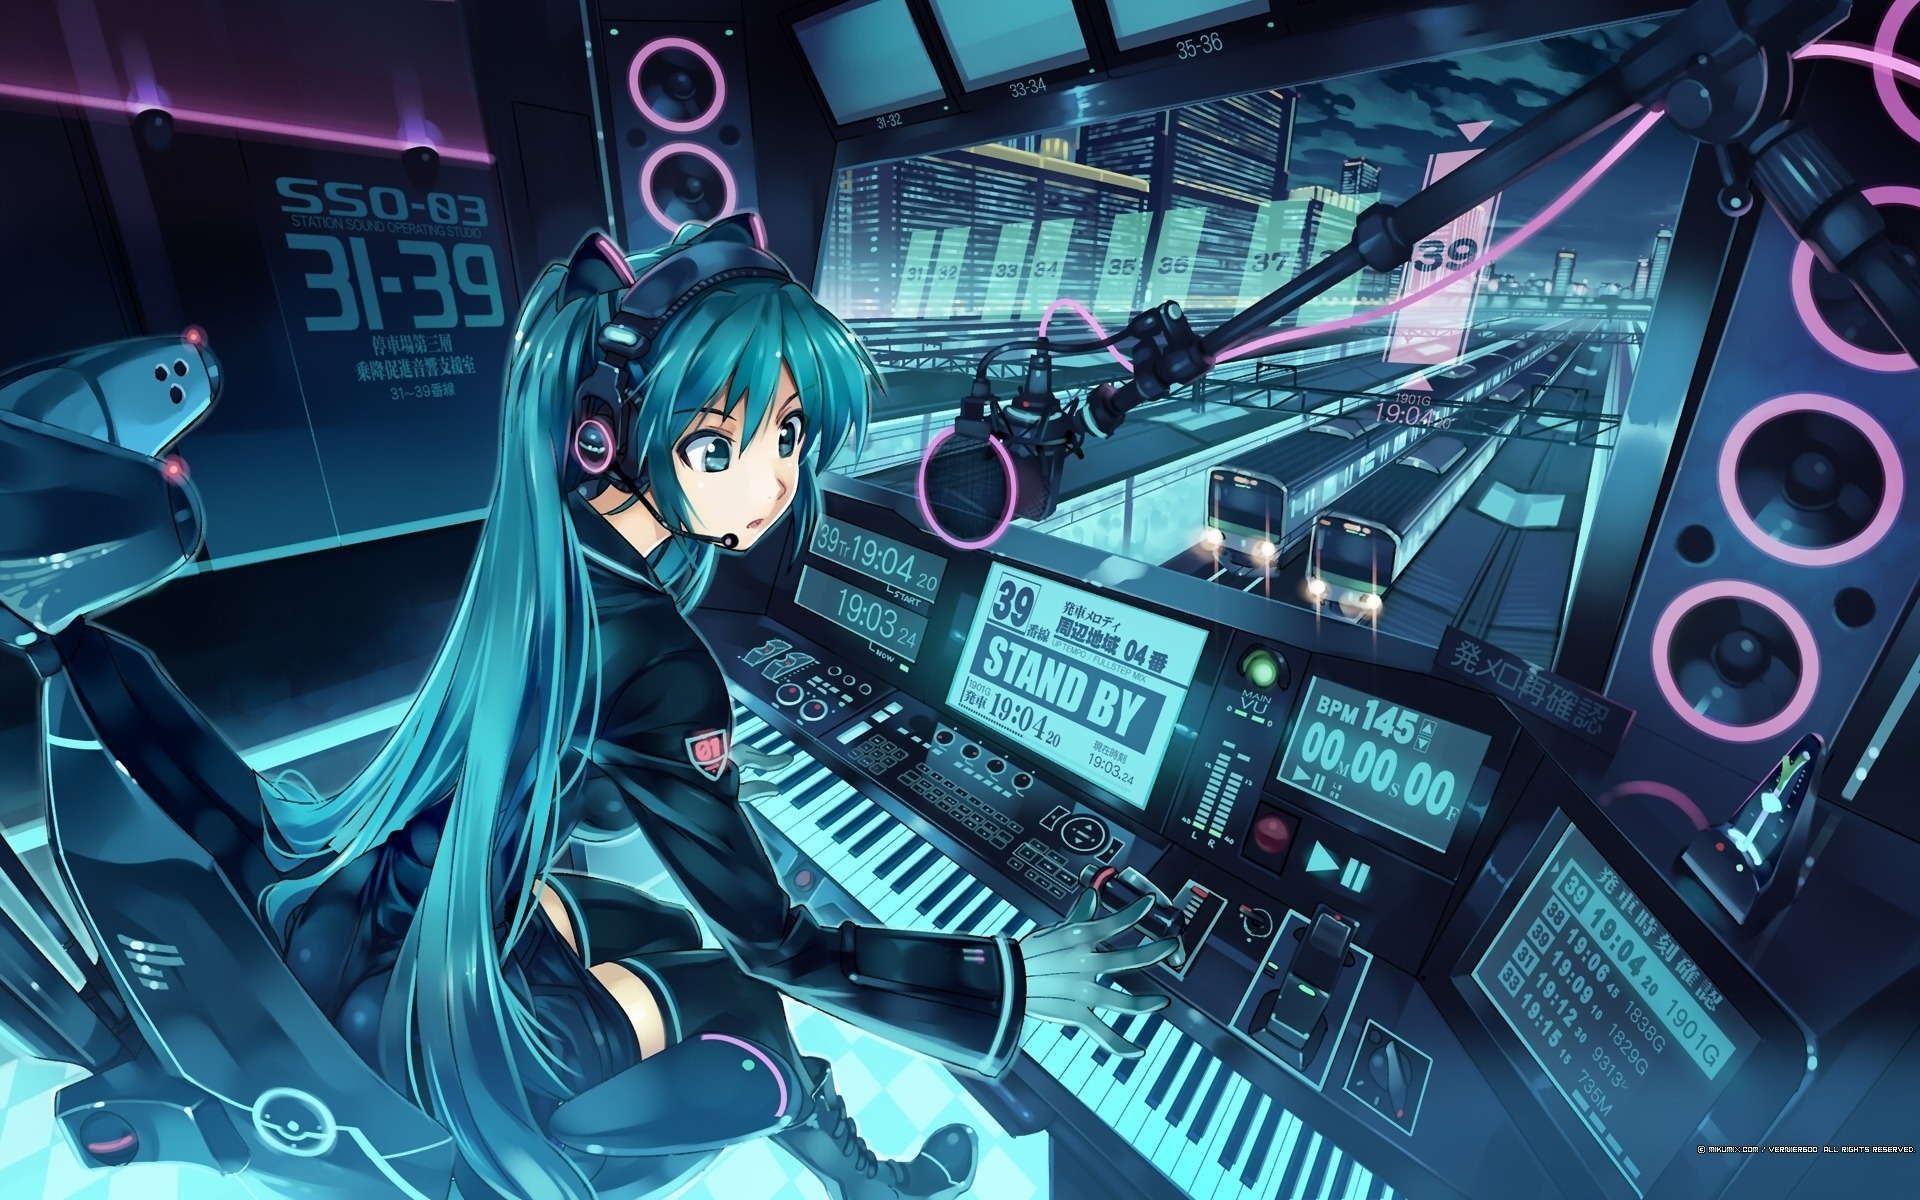 Hatsune miku train